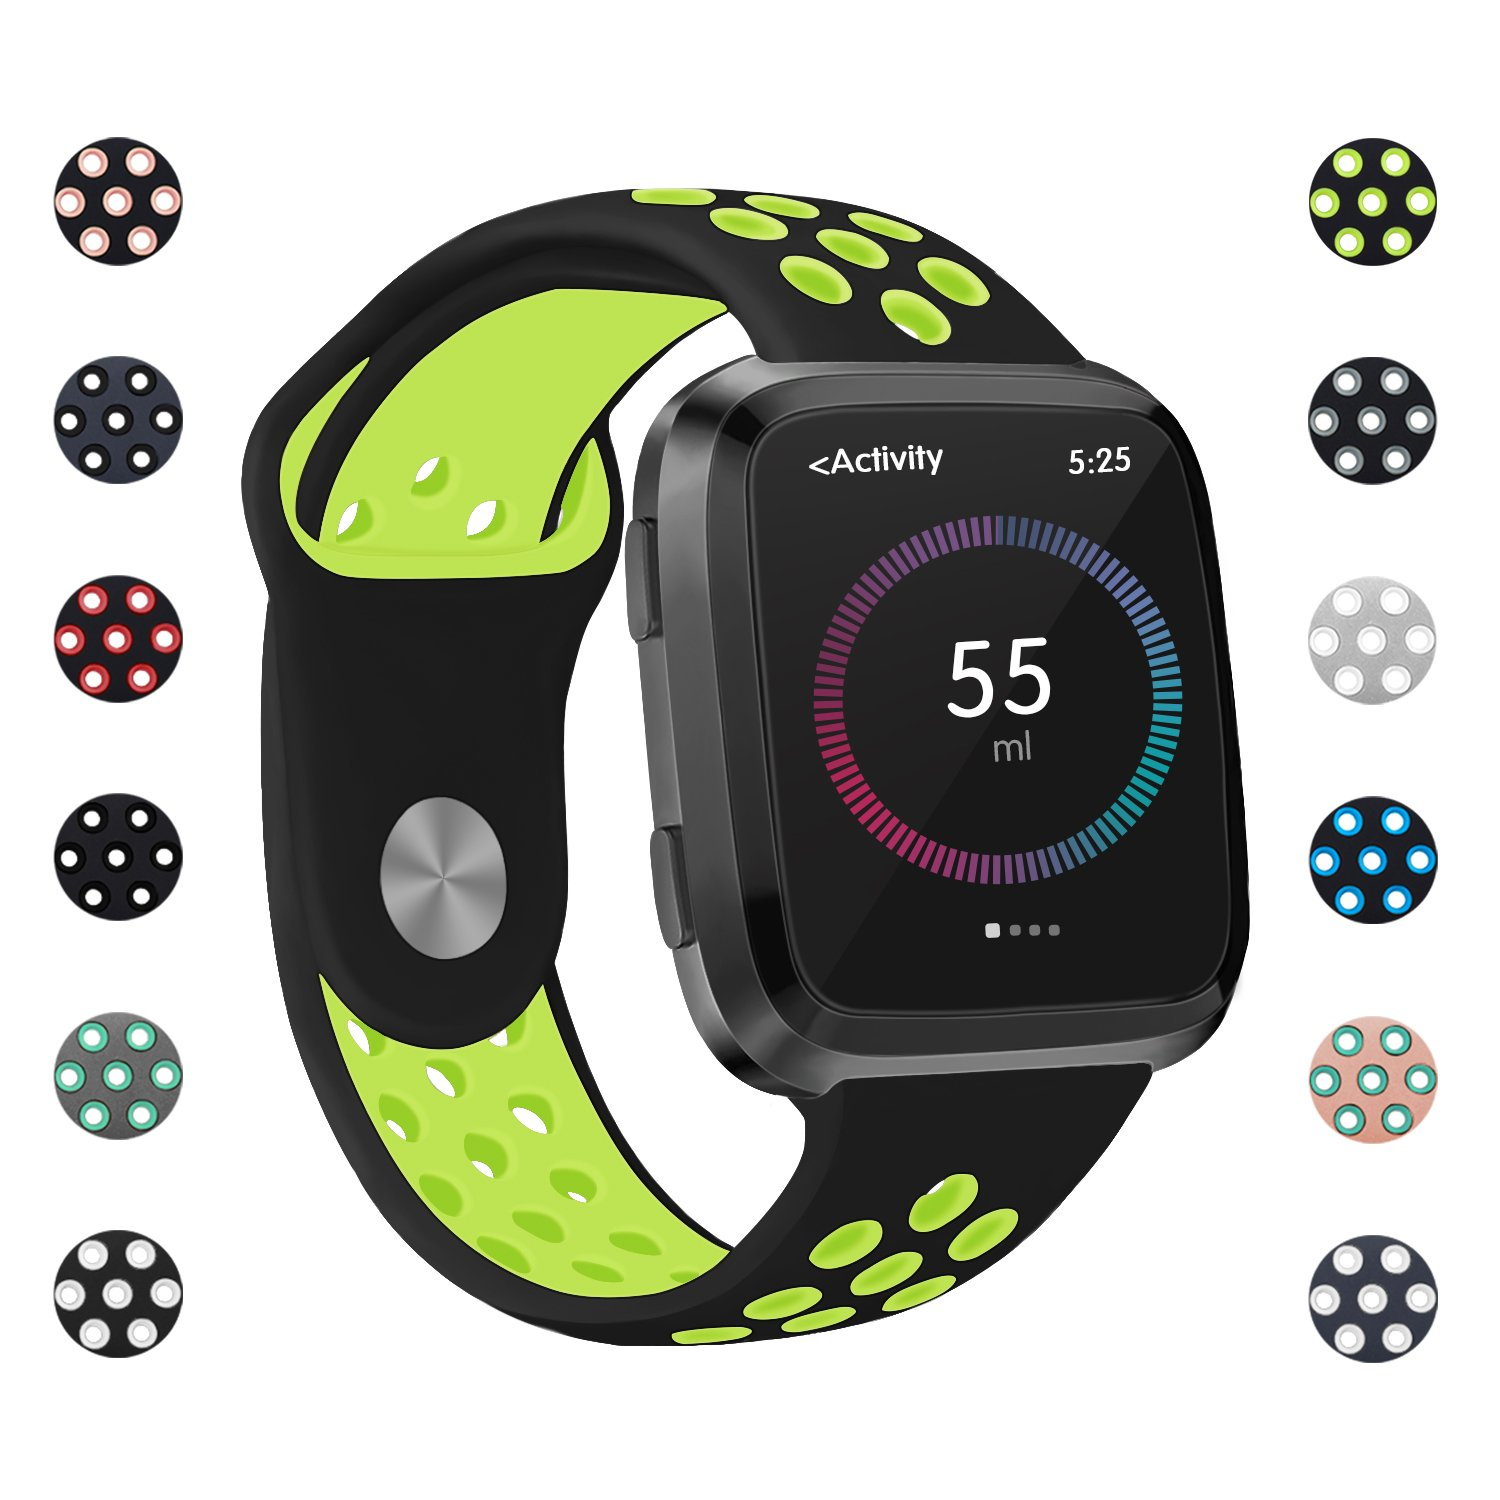 Poy for Fitbit Versaバンド、調節可能な通気性交換用スポーツバンドwith Air穴for Fitbit Versa Smart Watch B07D8RRPHY 12-Black Green L 1PC L (for6.7-8.1\